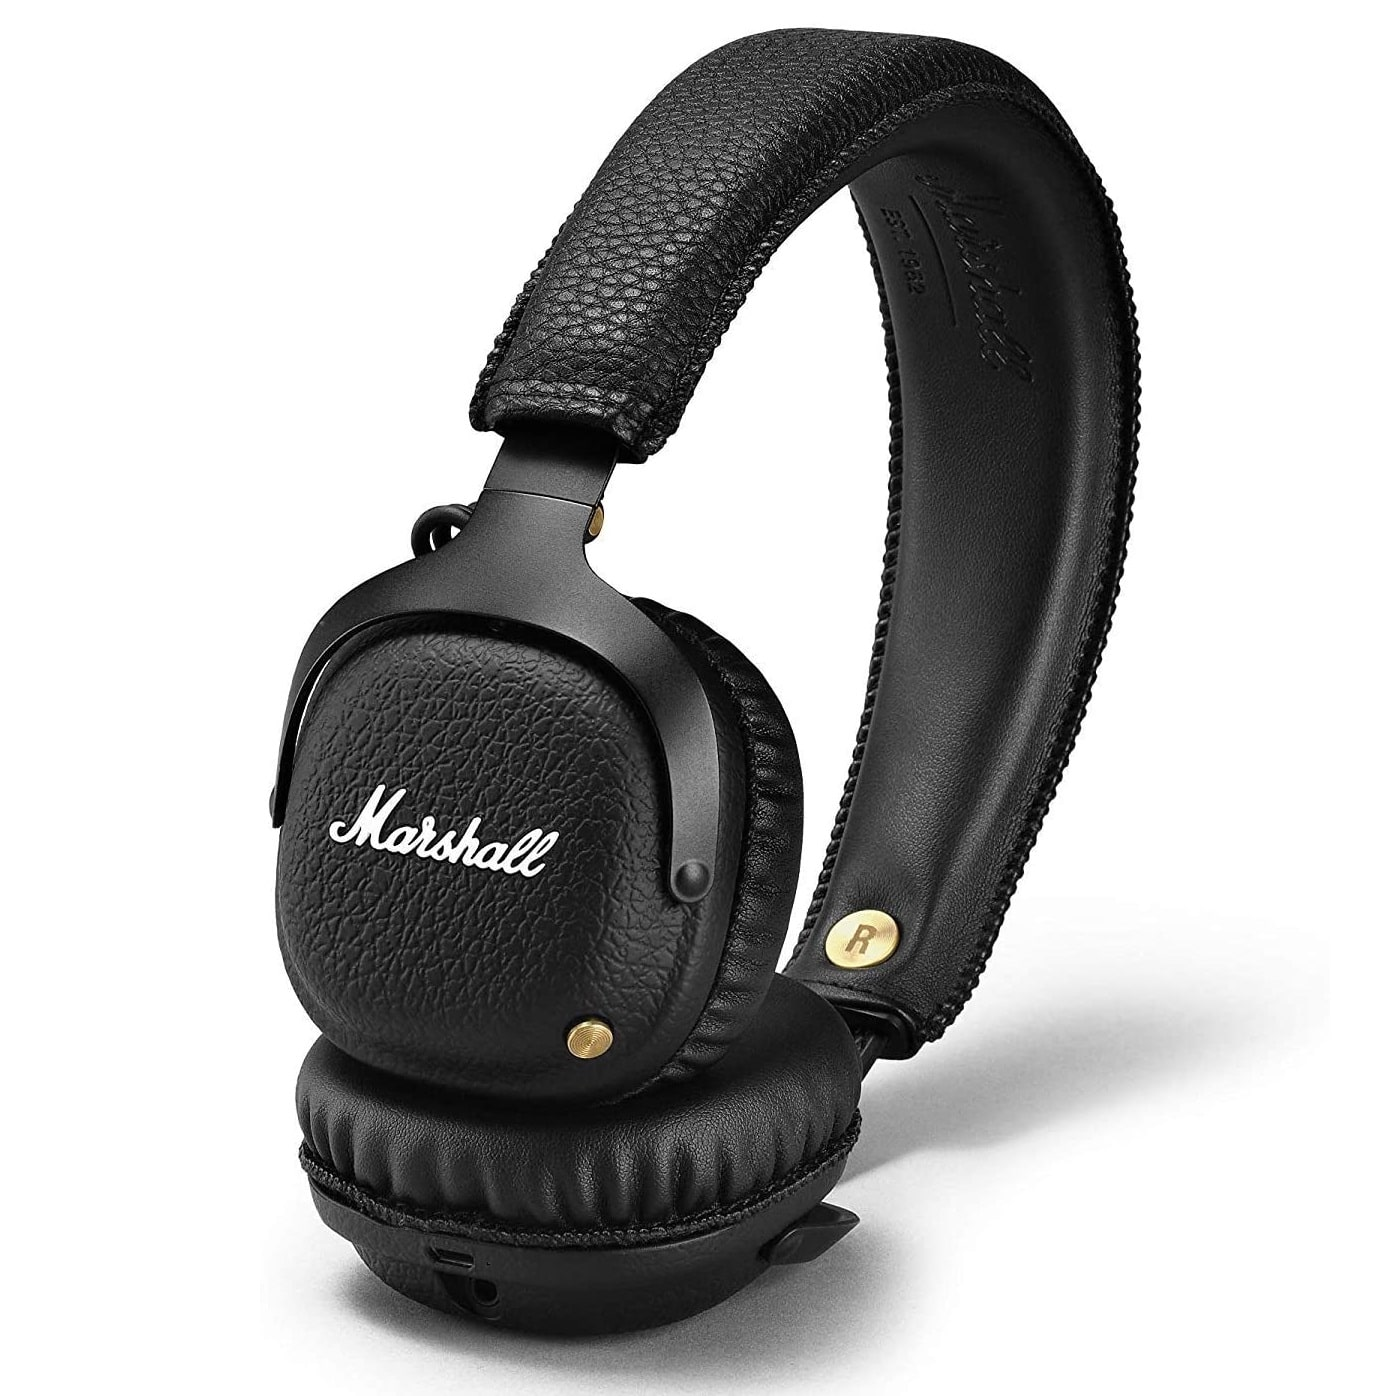 Marshall Mid Wireless Headphones: A Complete Review